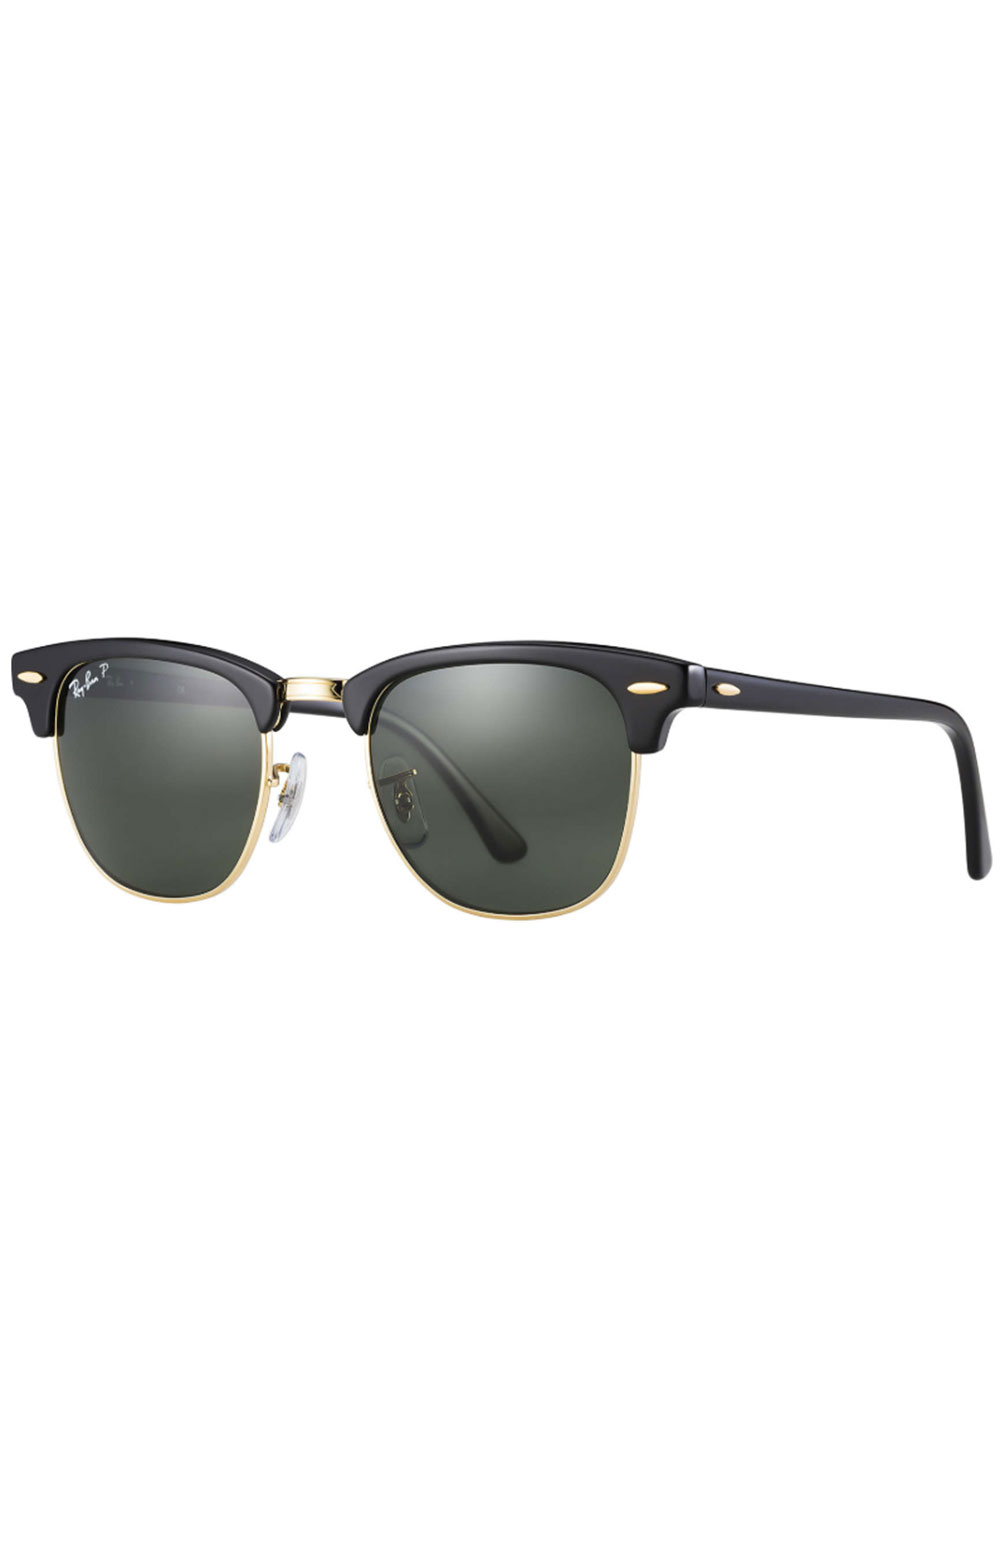 (901/5849) Clubmaster Sunglasses - Black/Crystal Green